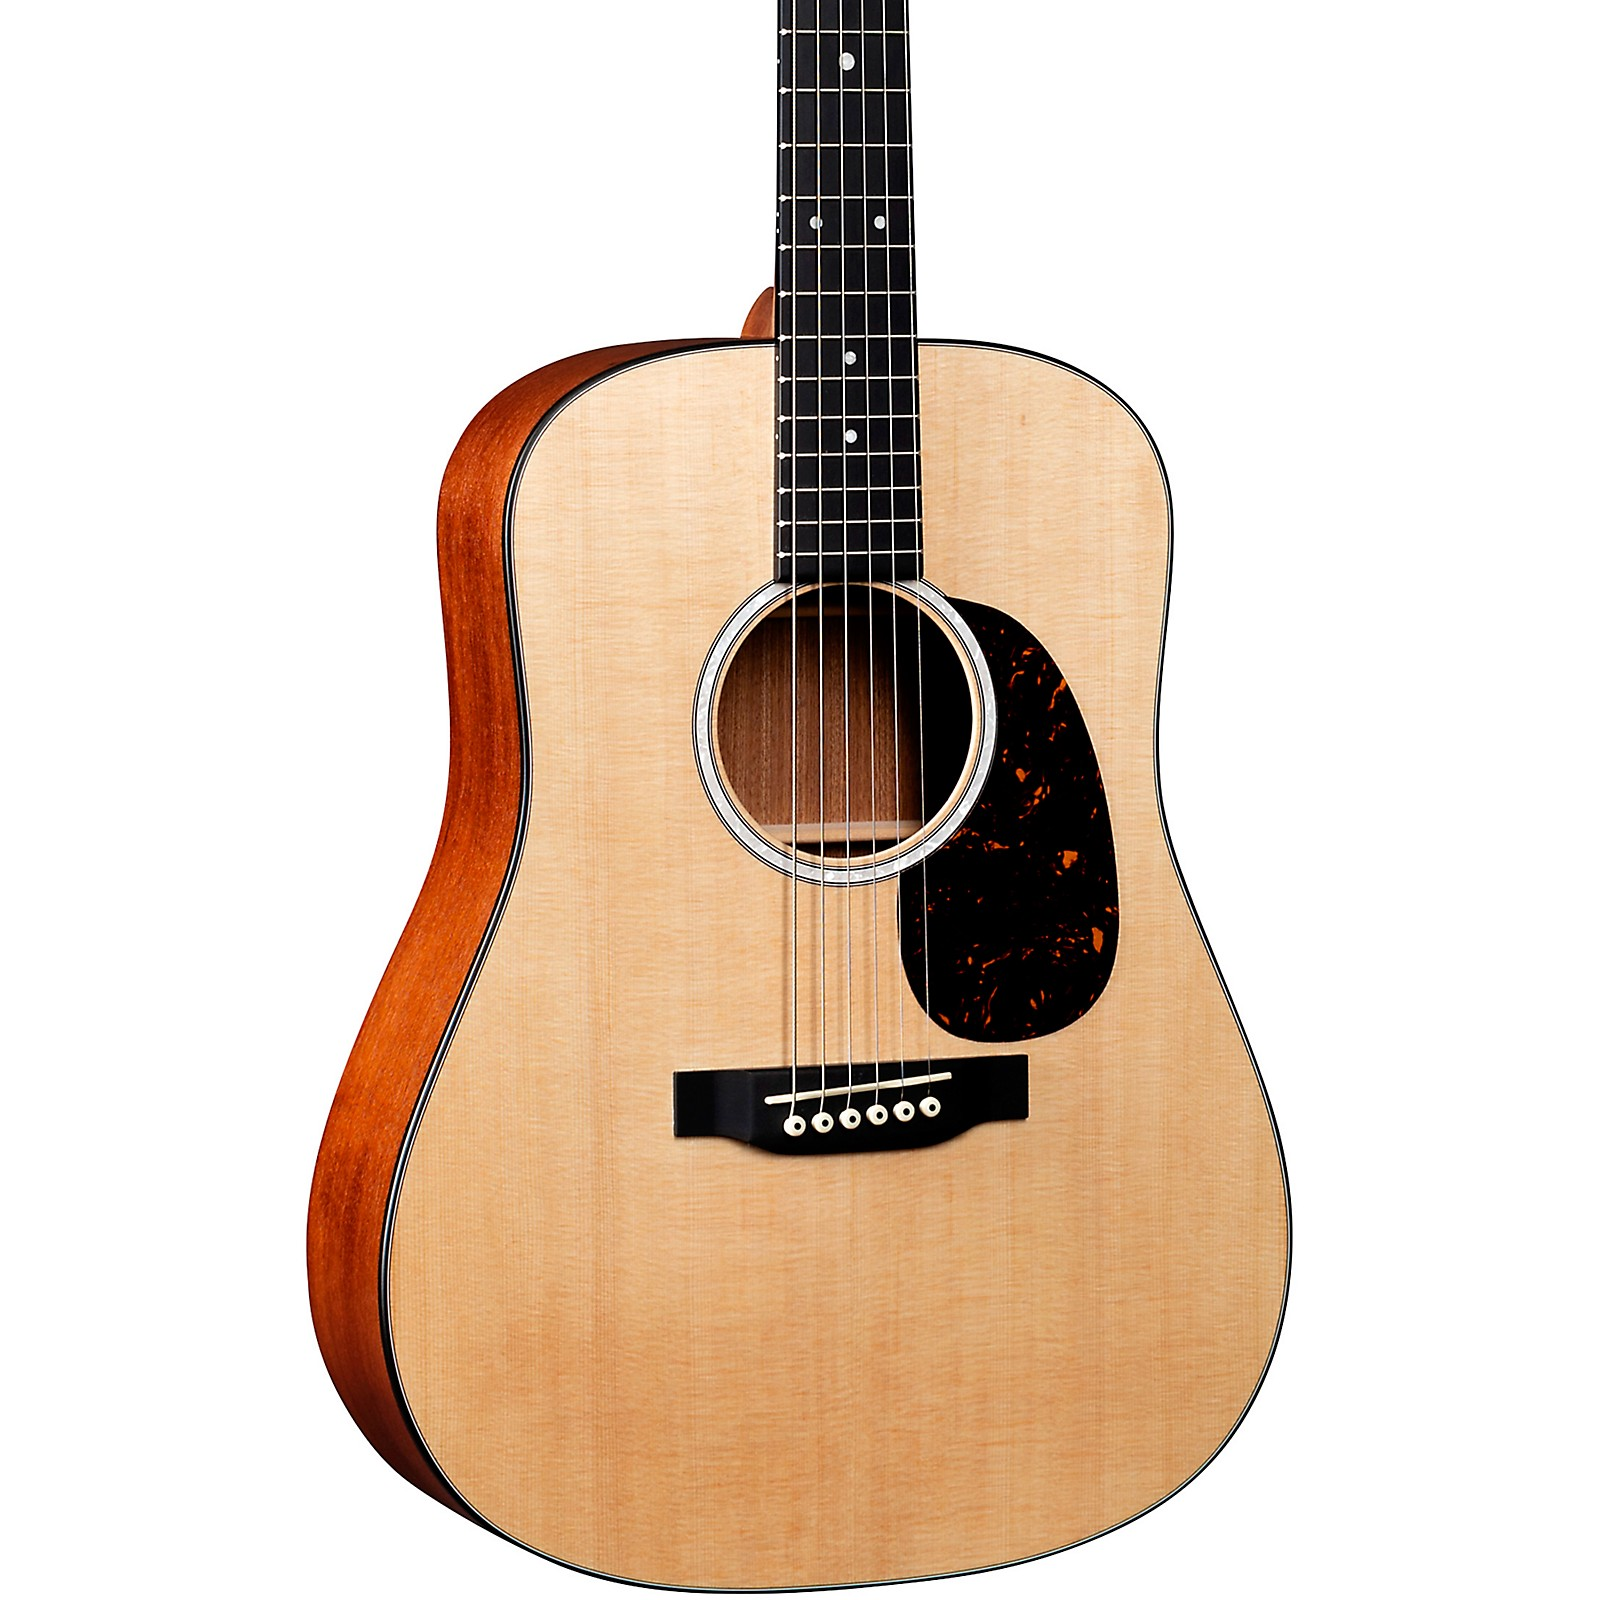 Martin DJr-10 Sitka Top Dreadnought Junior Acoustic Guitar